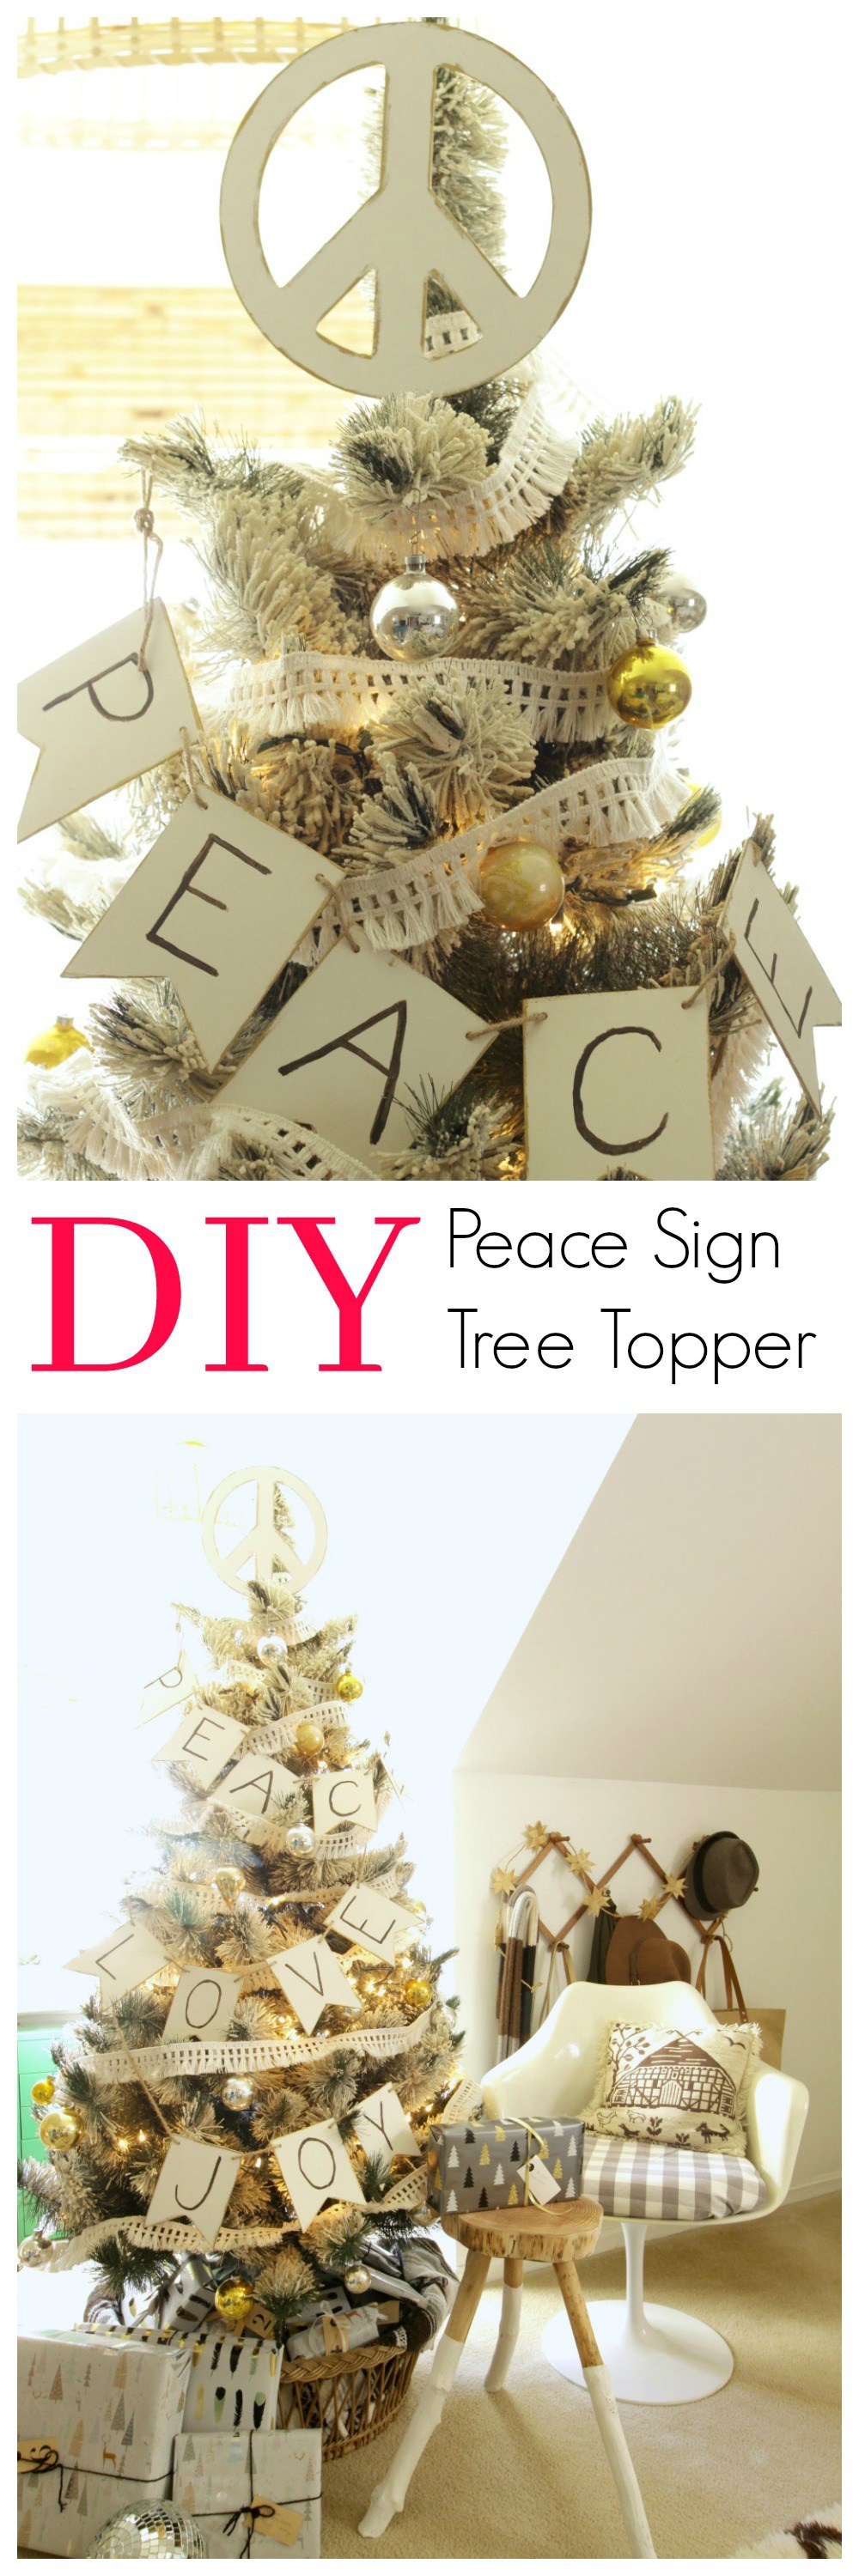 Peace Christmas Tree Topper.Diy Peace Sign Tree Topper Holiday Home Decor Modern